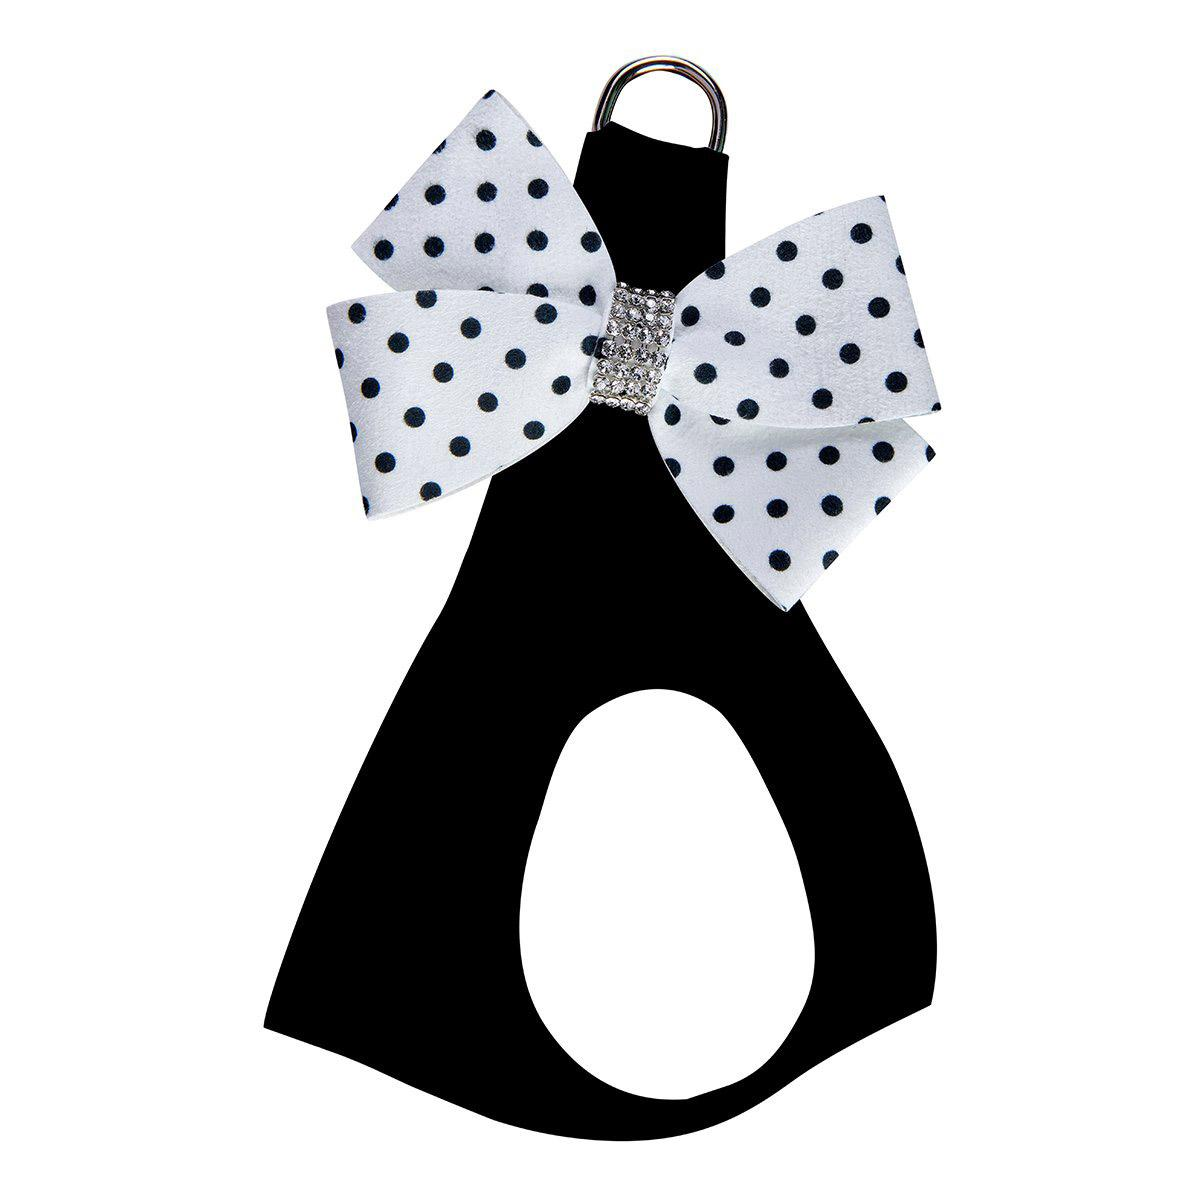 Black & White Nouveau Bow Polka Dot Step-In Dog Harness by Susan Lanci - Polka Dot Bow